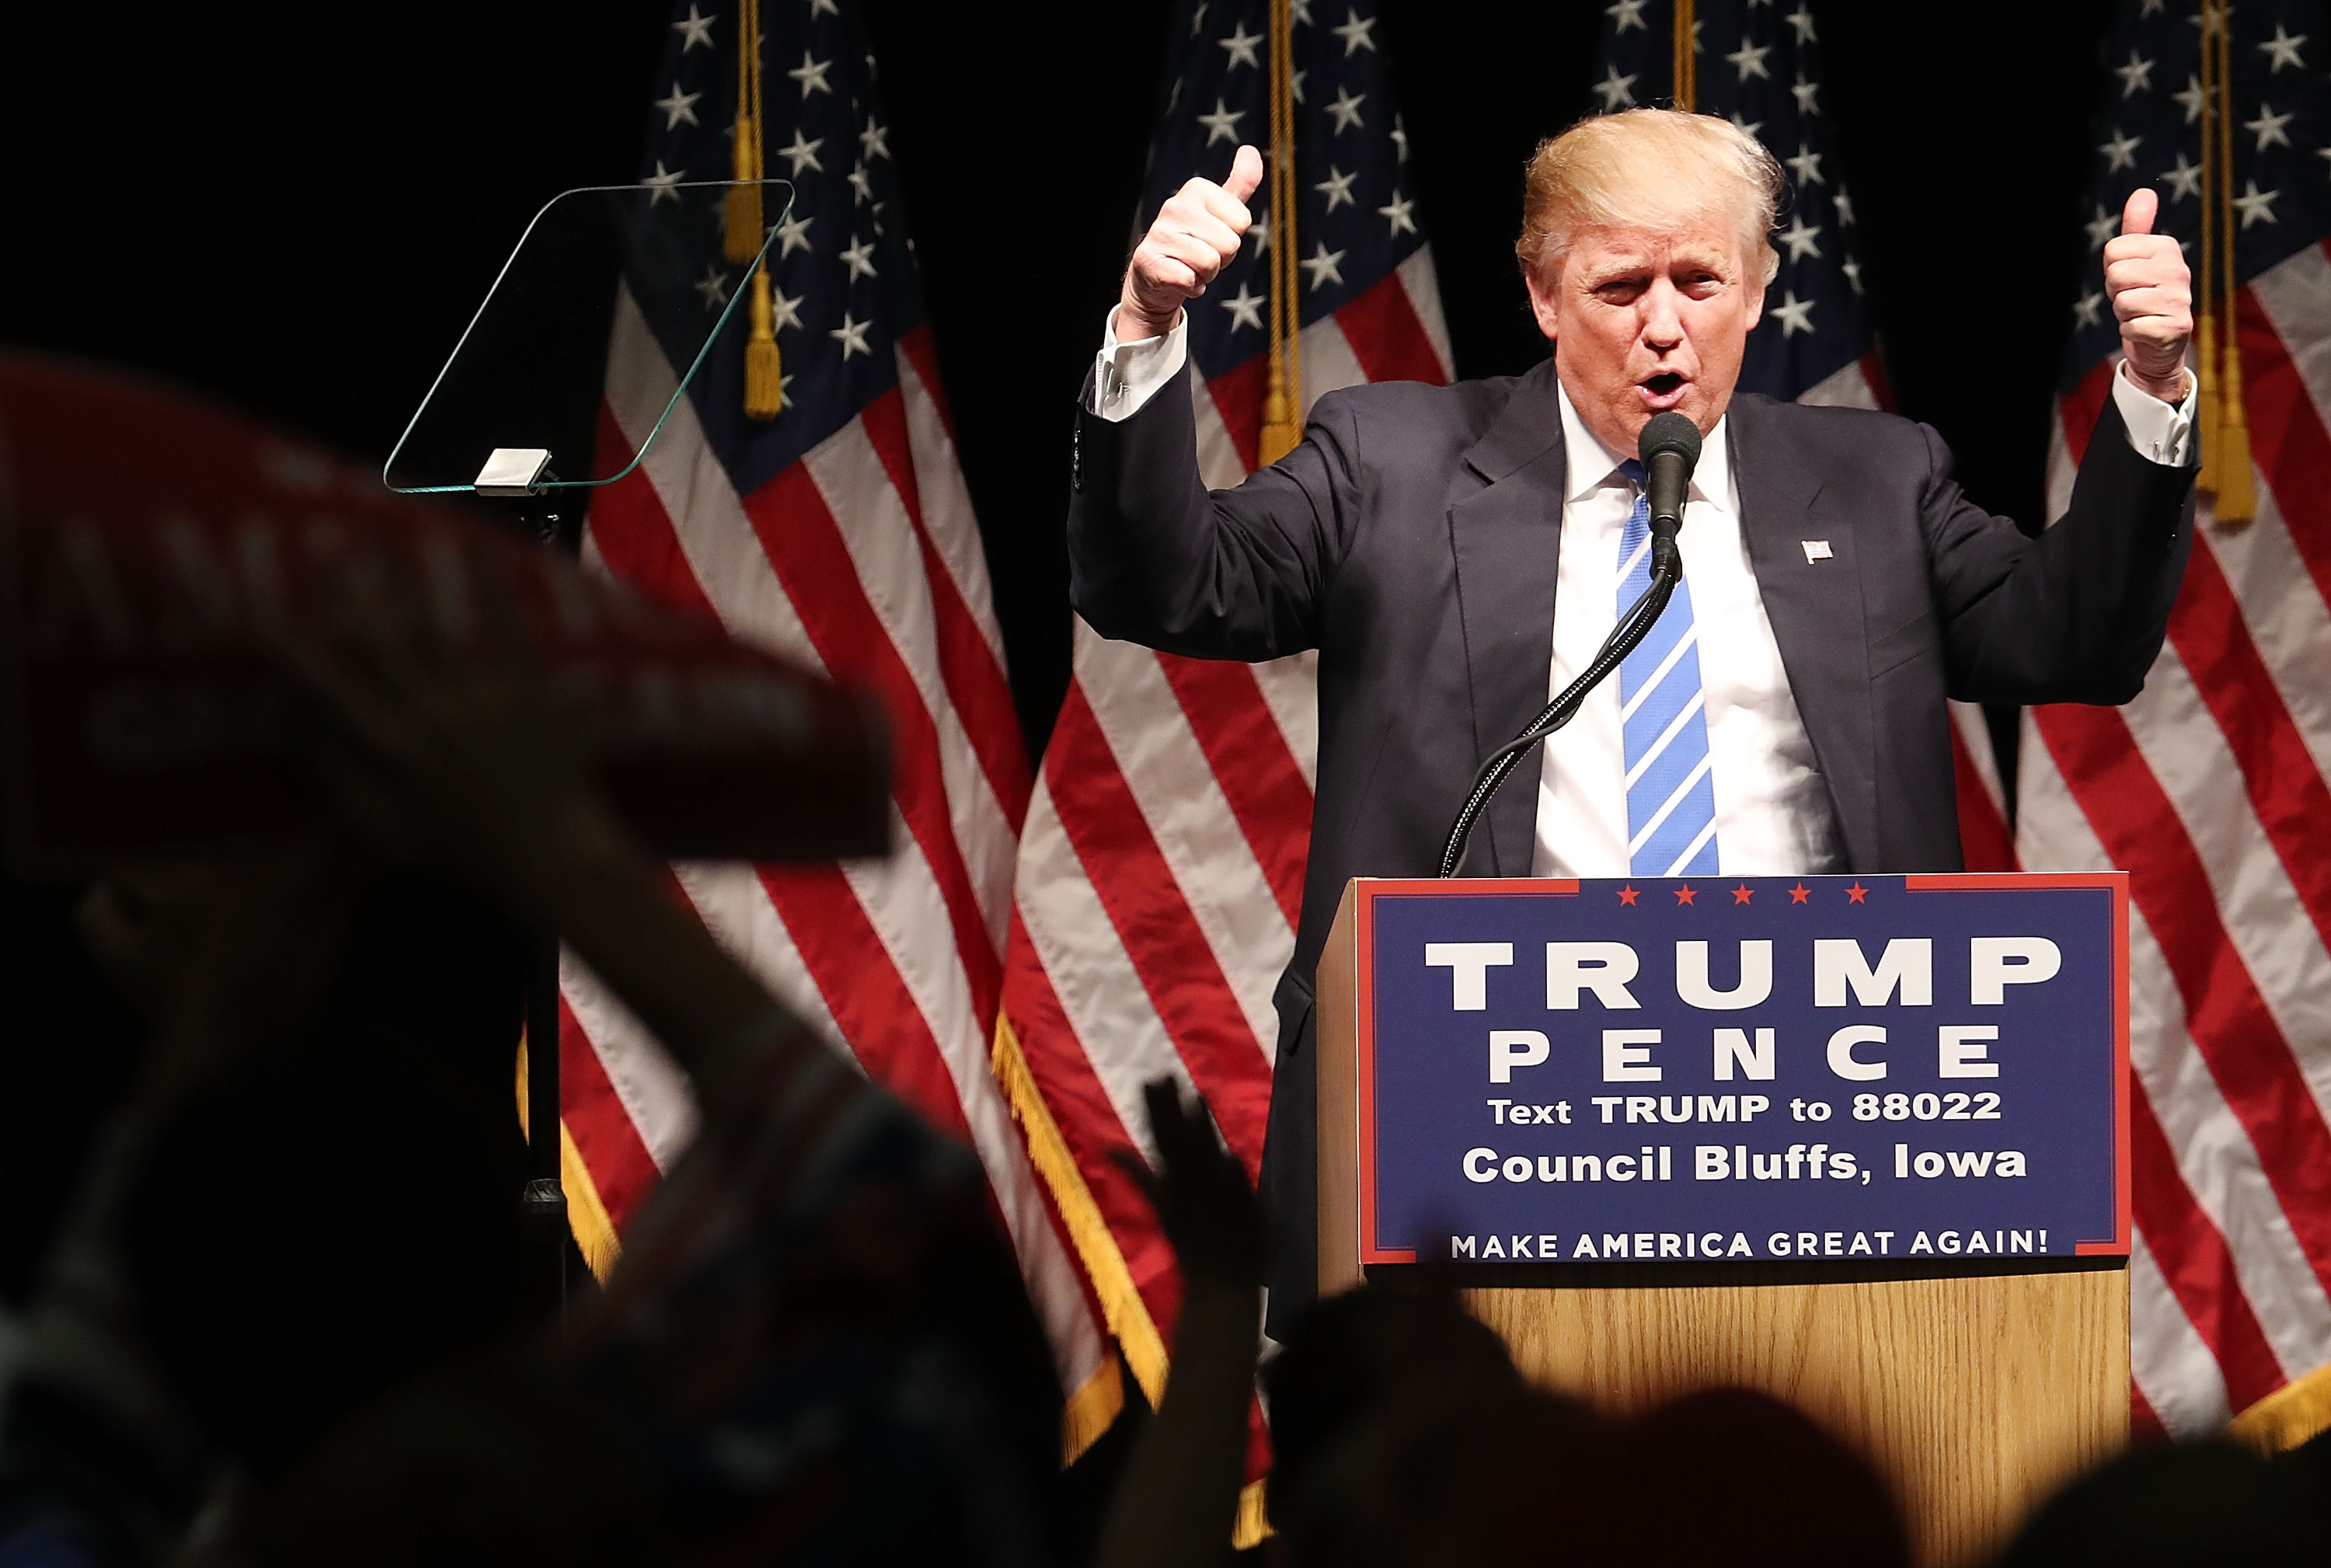 Republican Presidential Candidate Donald Trump Holds Rally In Council Bluffs, Iowa